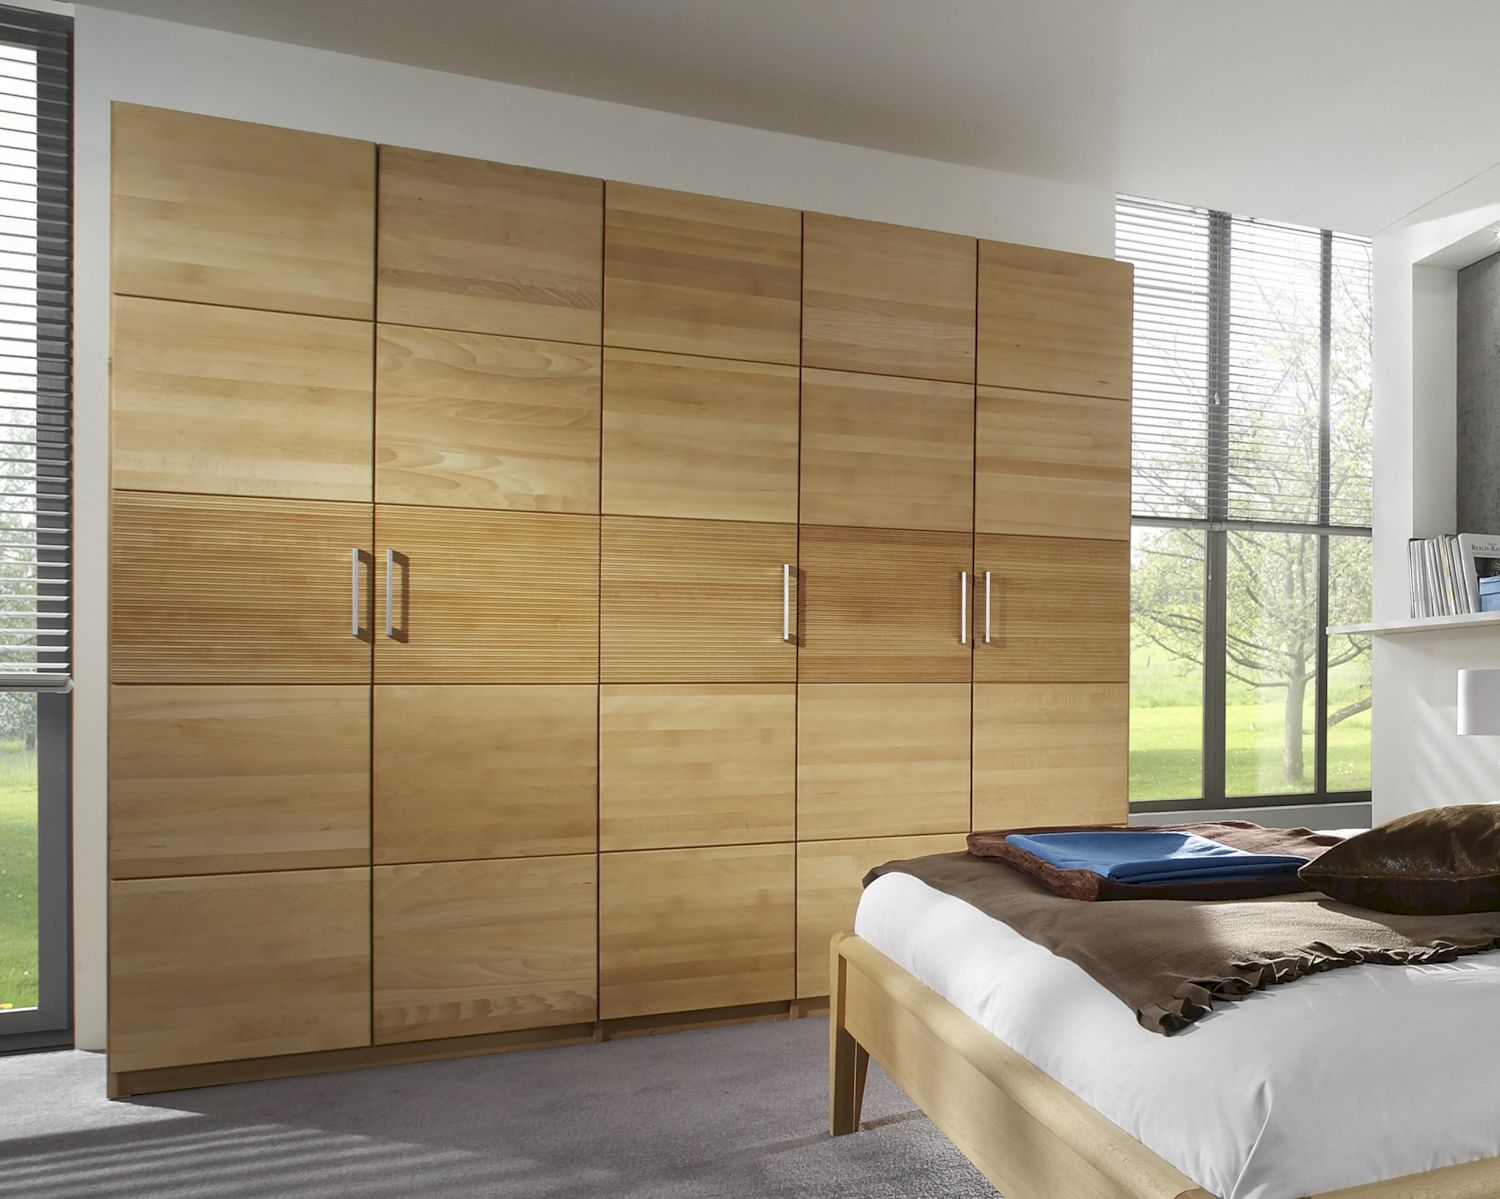 massivholz kleiderschrank choice c kaufen. Black Bedroom Furniture Sets. Home Design Ideas